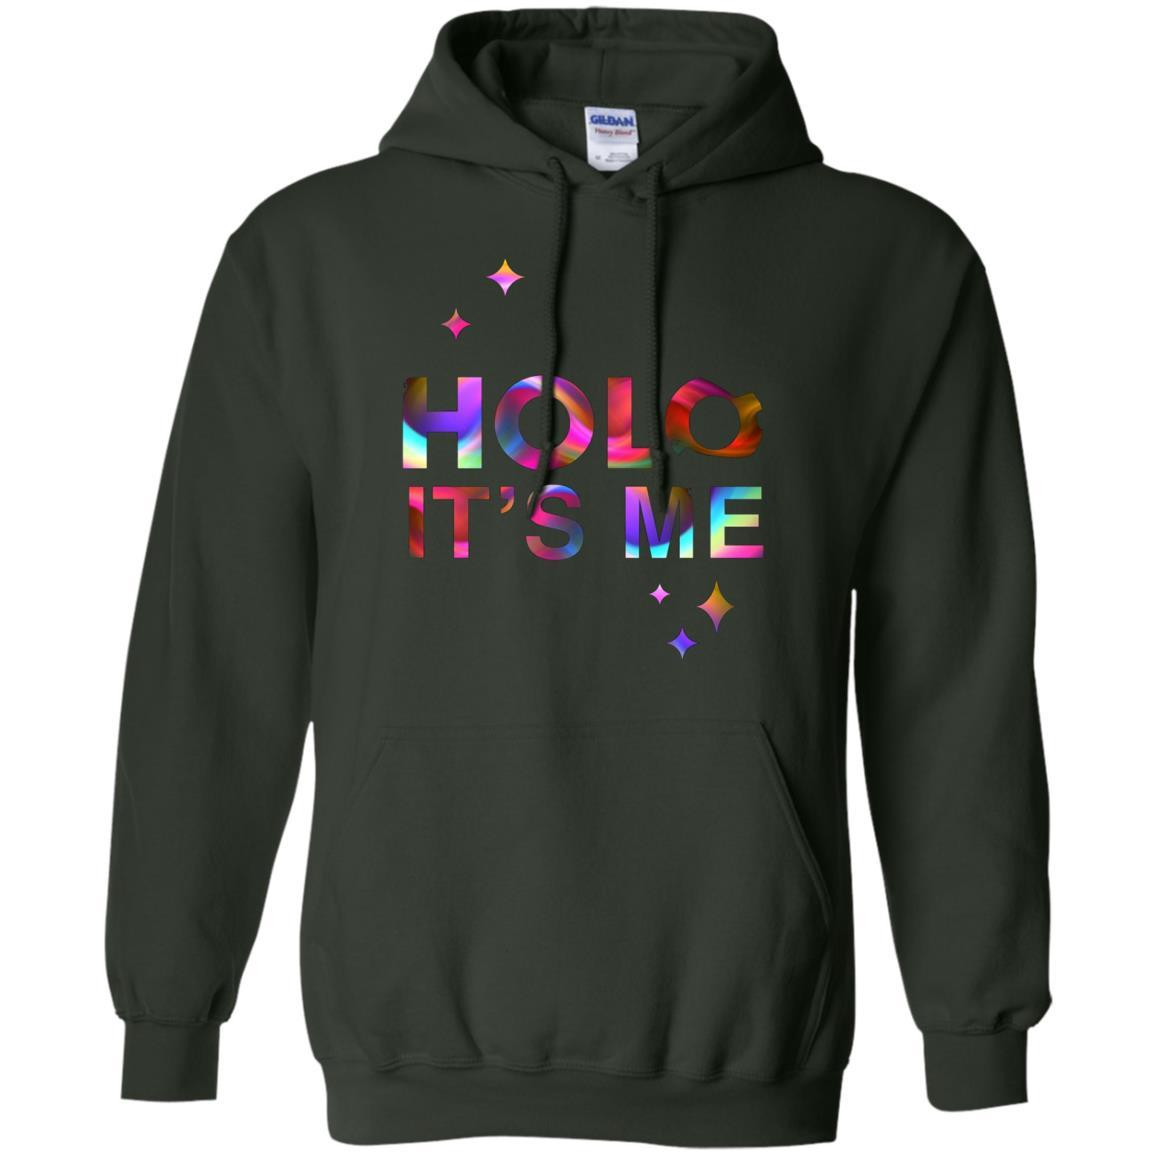 Holo It's Me - Pullover Hoodie Forest Green / 5XL